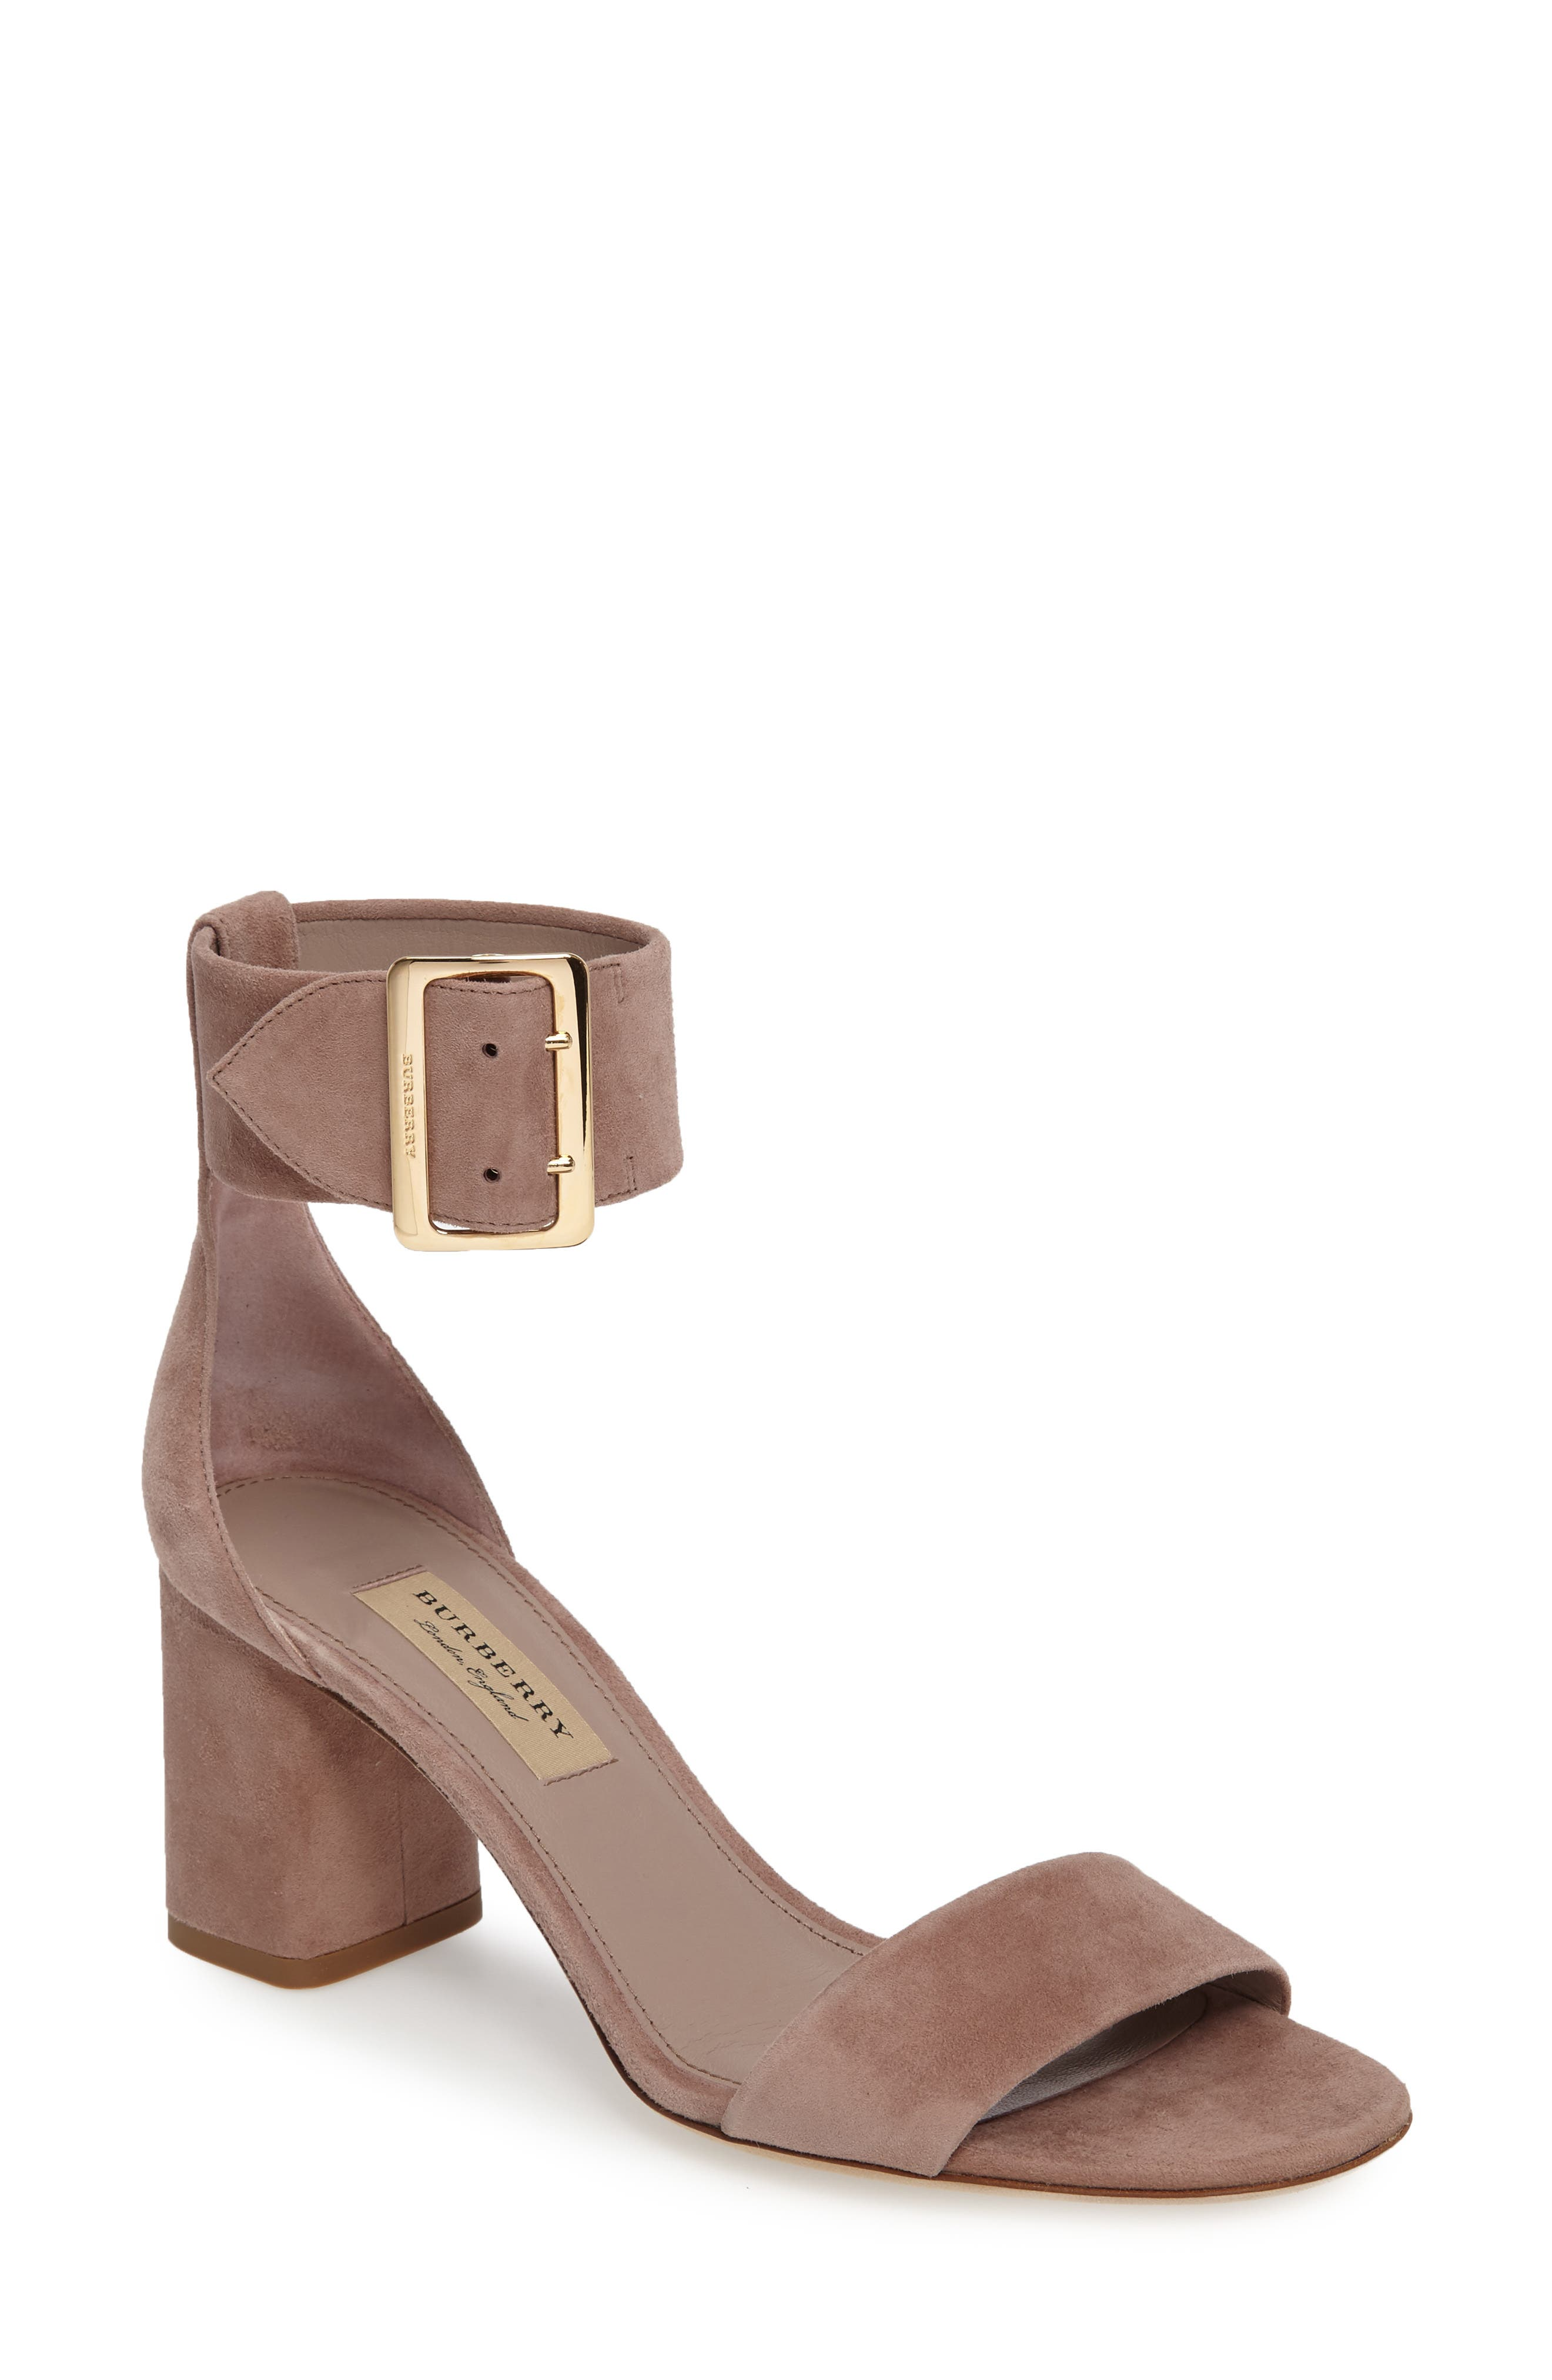 Main Image - Burberry Trench Buckle Sandal (Women)